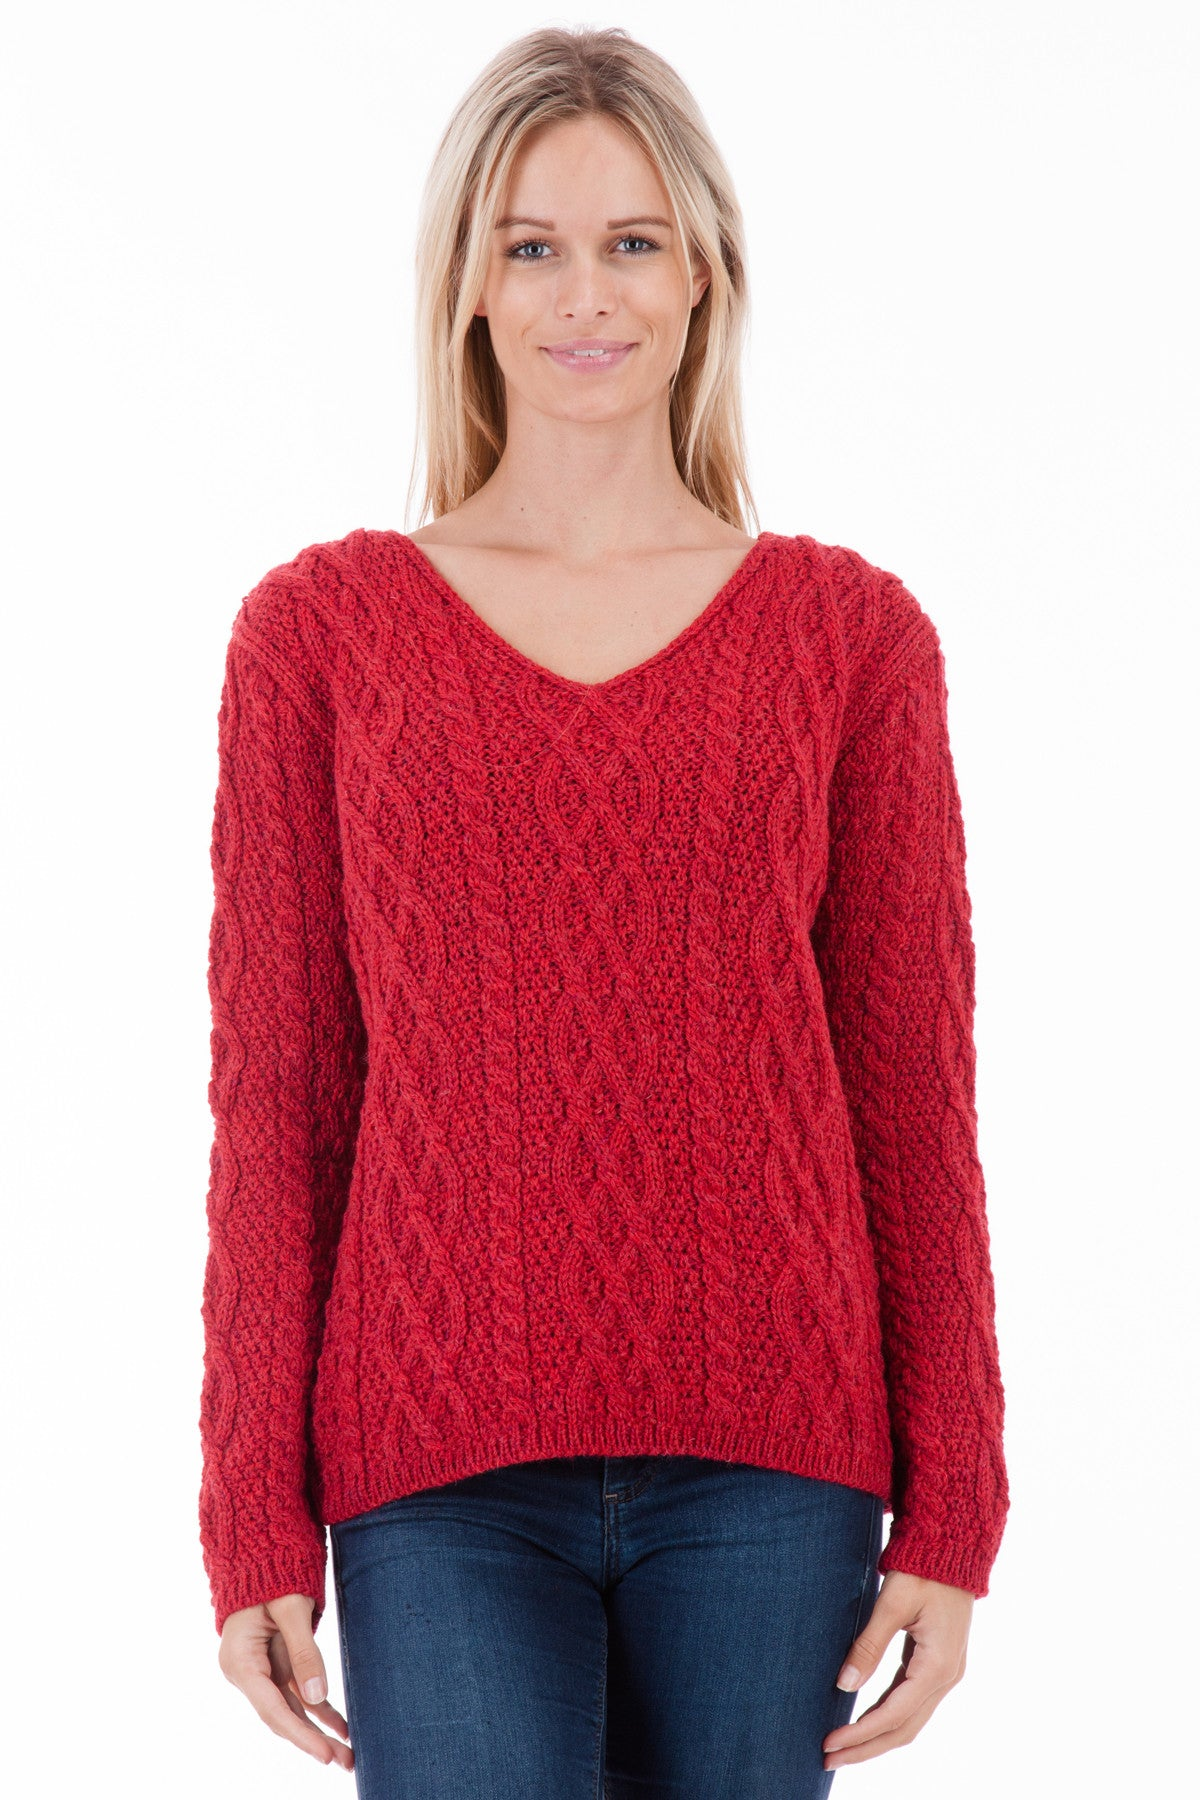 The Yorkshire - Scarlett - Womens Aran Jumper